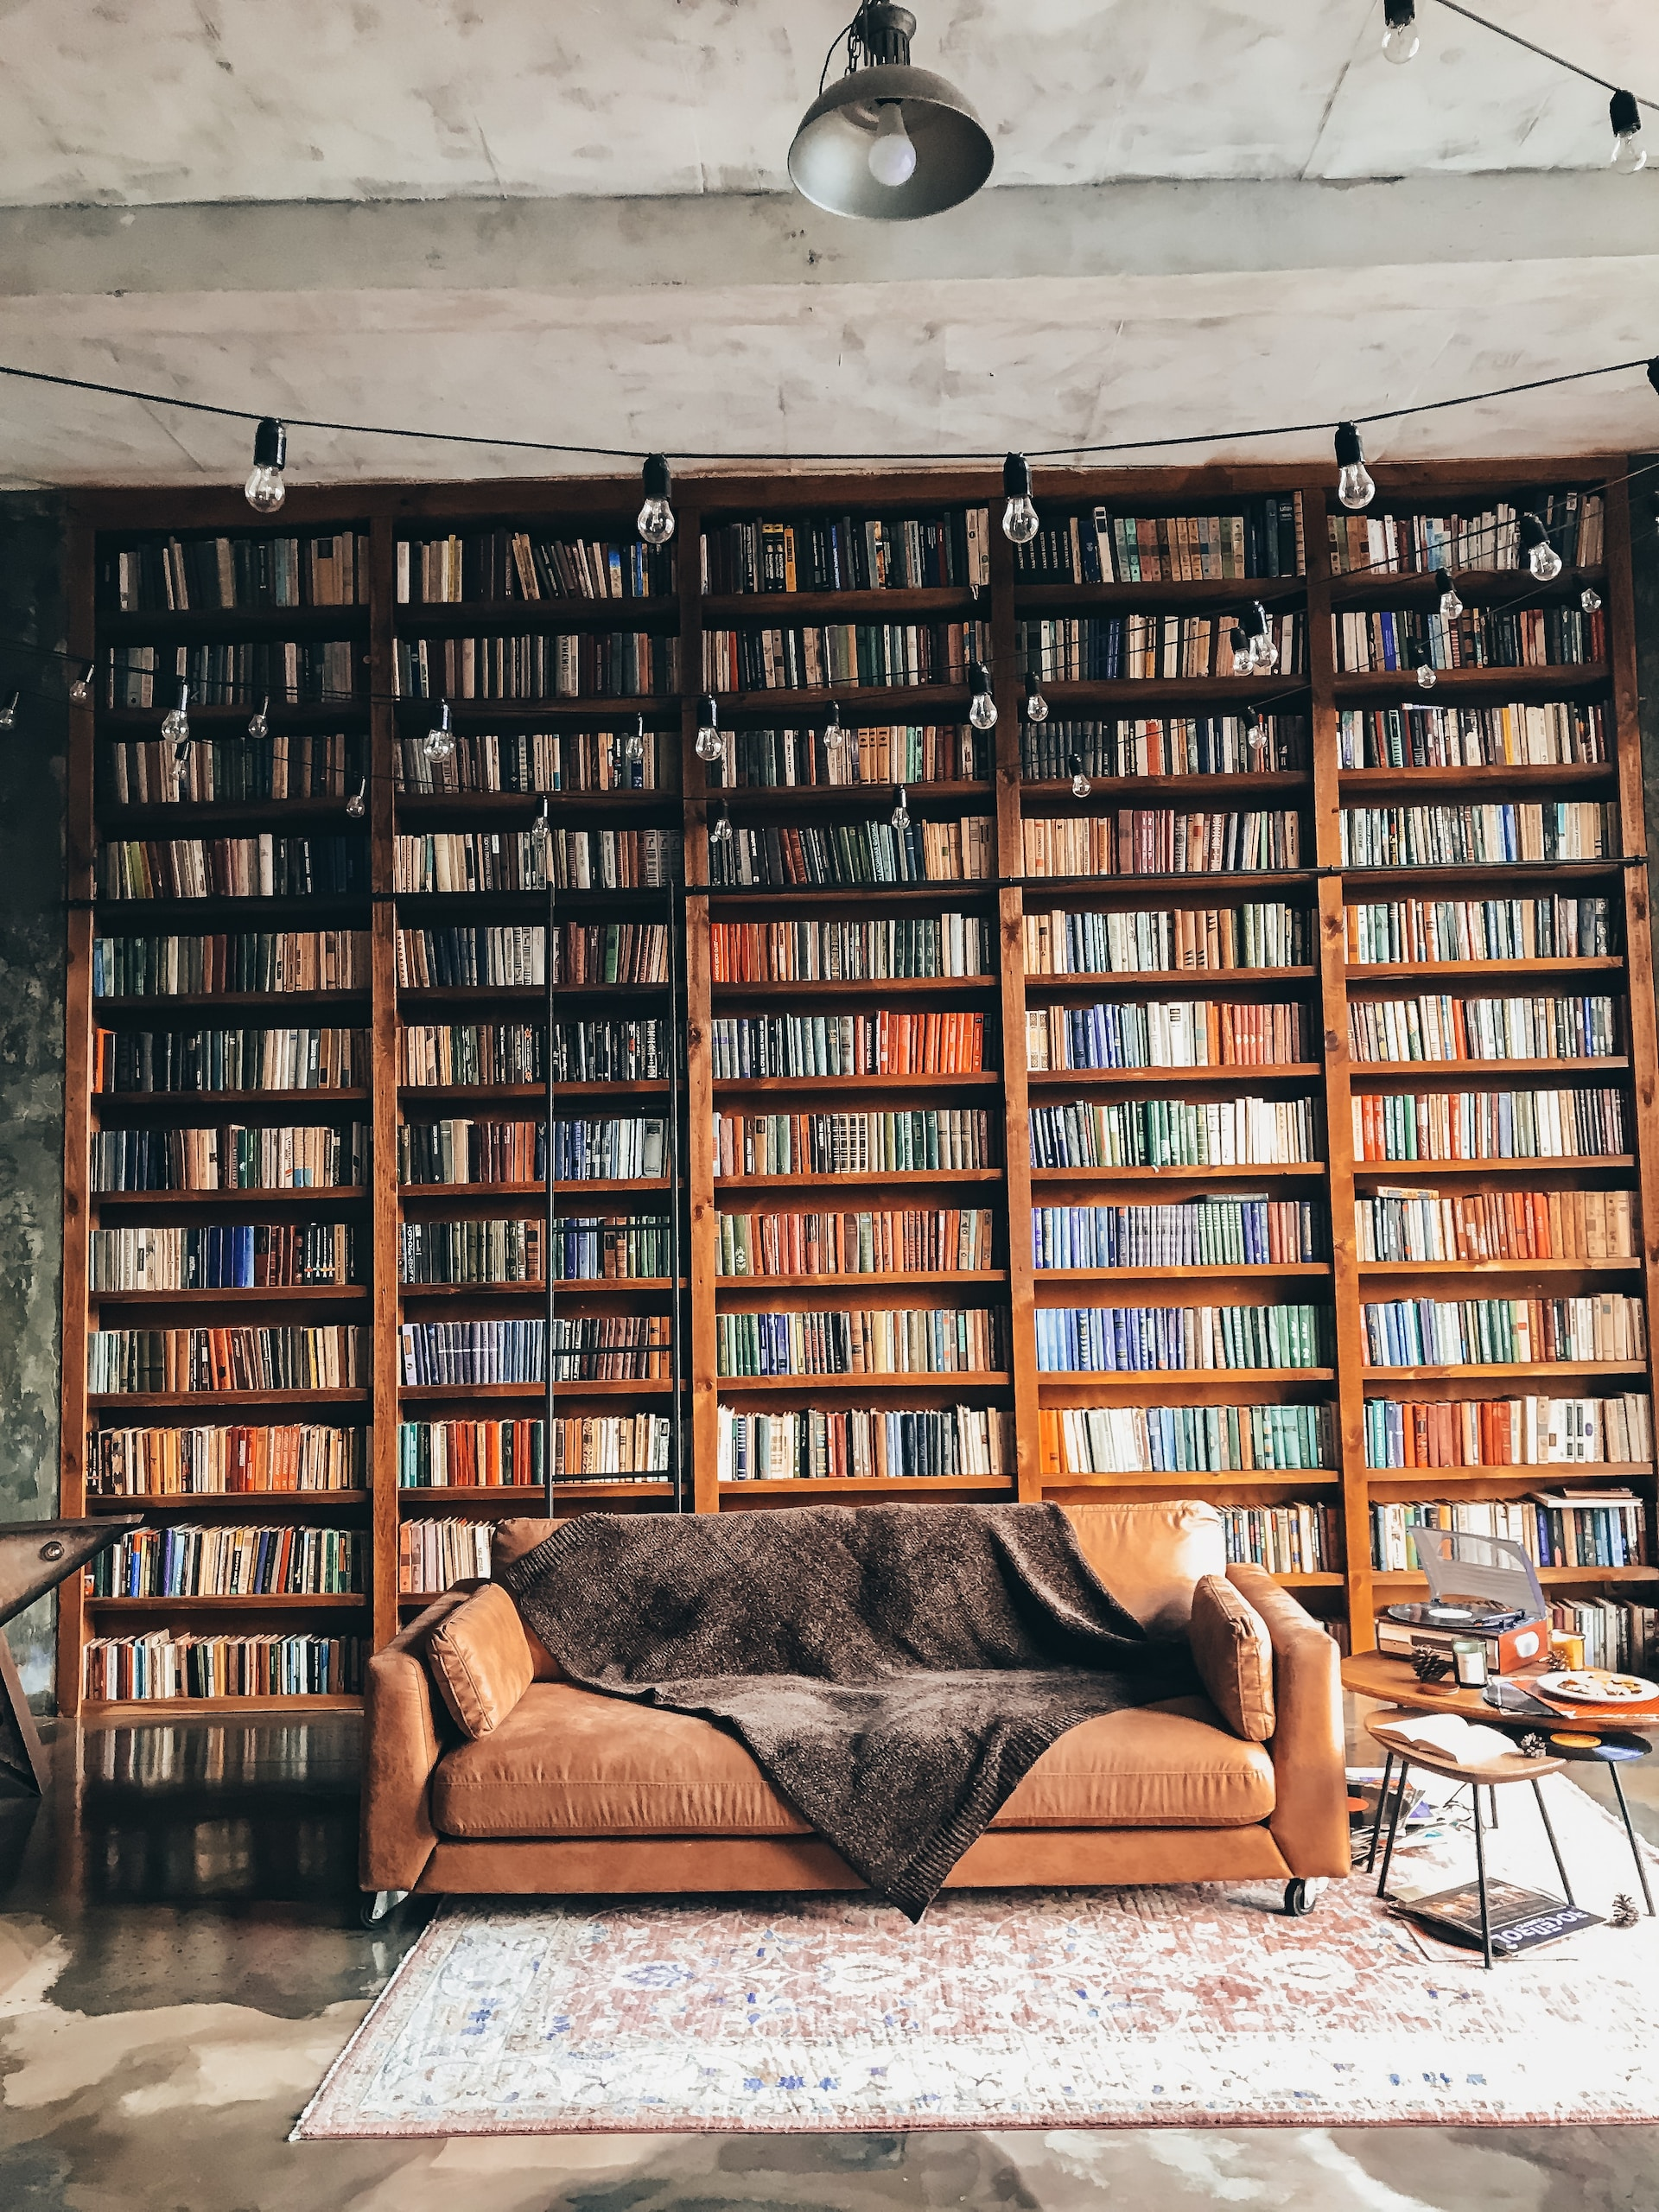 How to Organize Your Library?